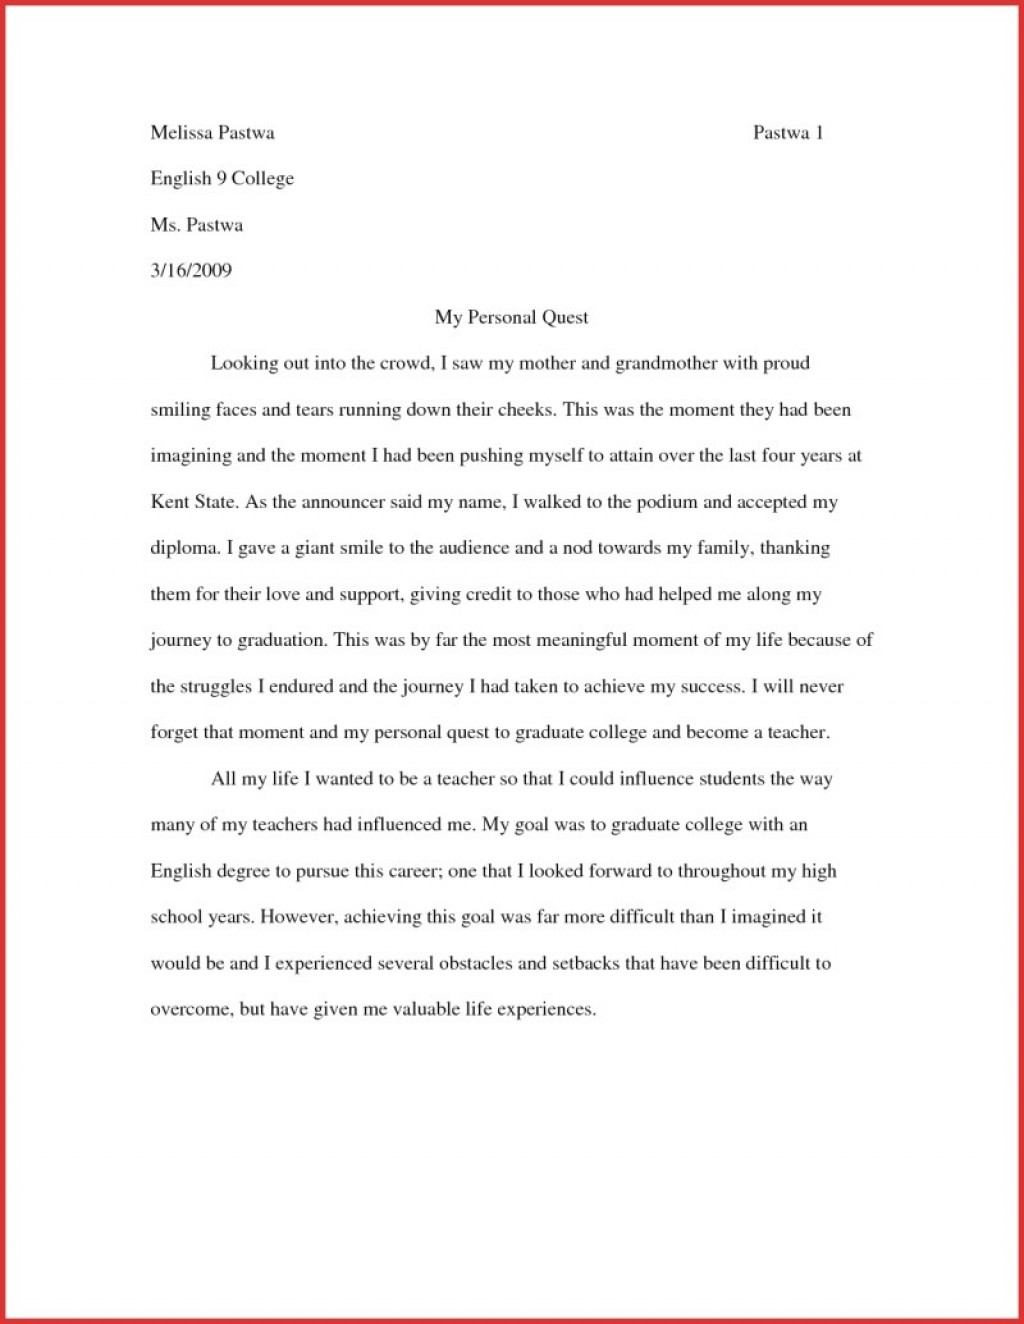 013 My Name Essay Example English Books Essays On Throughout College Examples Stunning Conclusion Esperanza Large